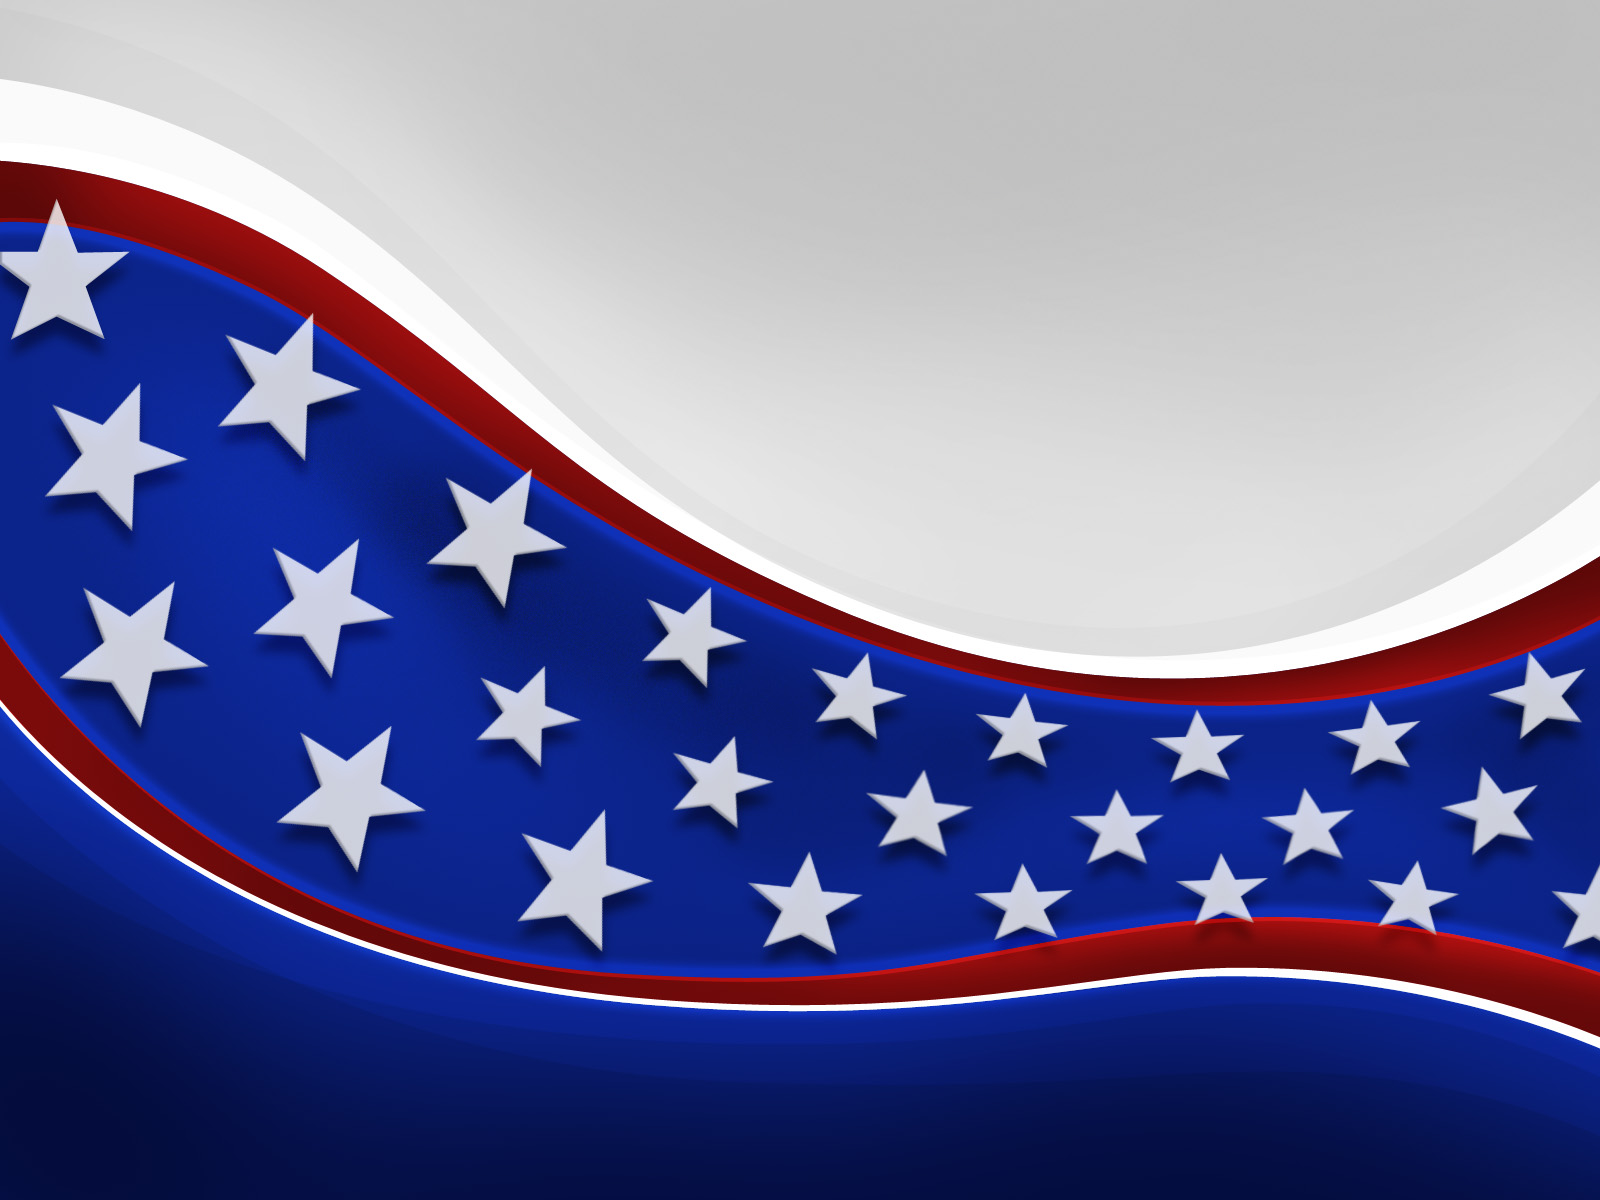 United States of America Flag PPT Template